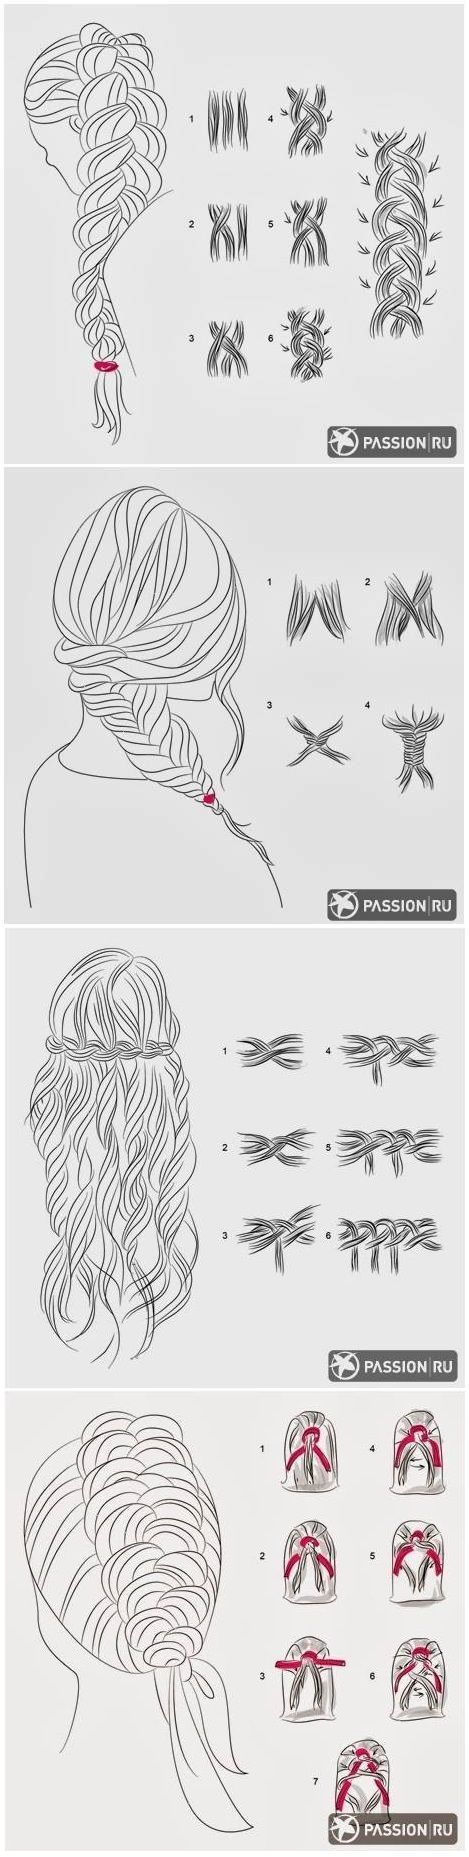 nice 20 Best Hair Tutorials You'll Ever Read - Page 27 of 94 - HairSilver by http://www.danazhairstyles.xyz/hair-tutorials/20-best-hair-tutorials-youll-ever-read-page-27-of-94-hairsilver/